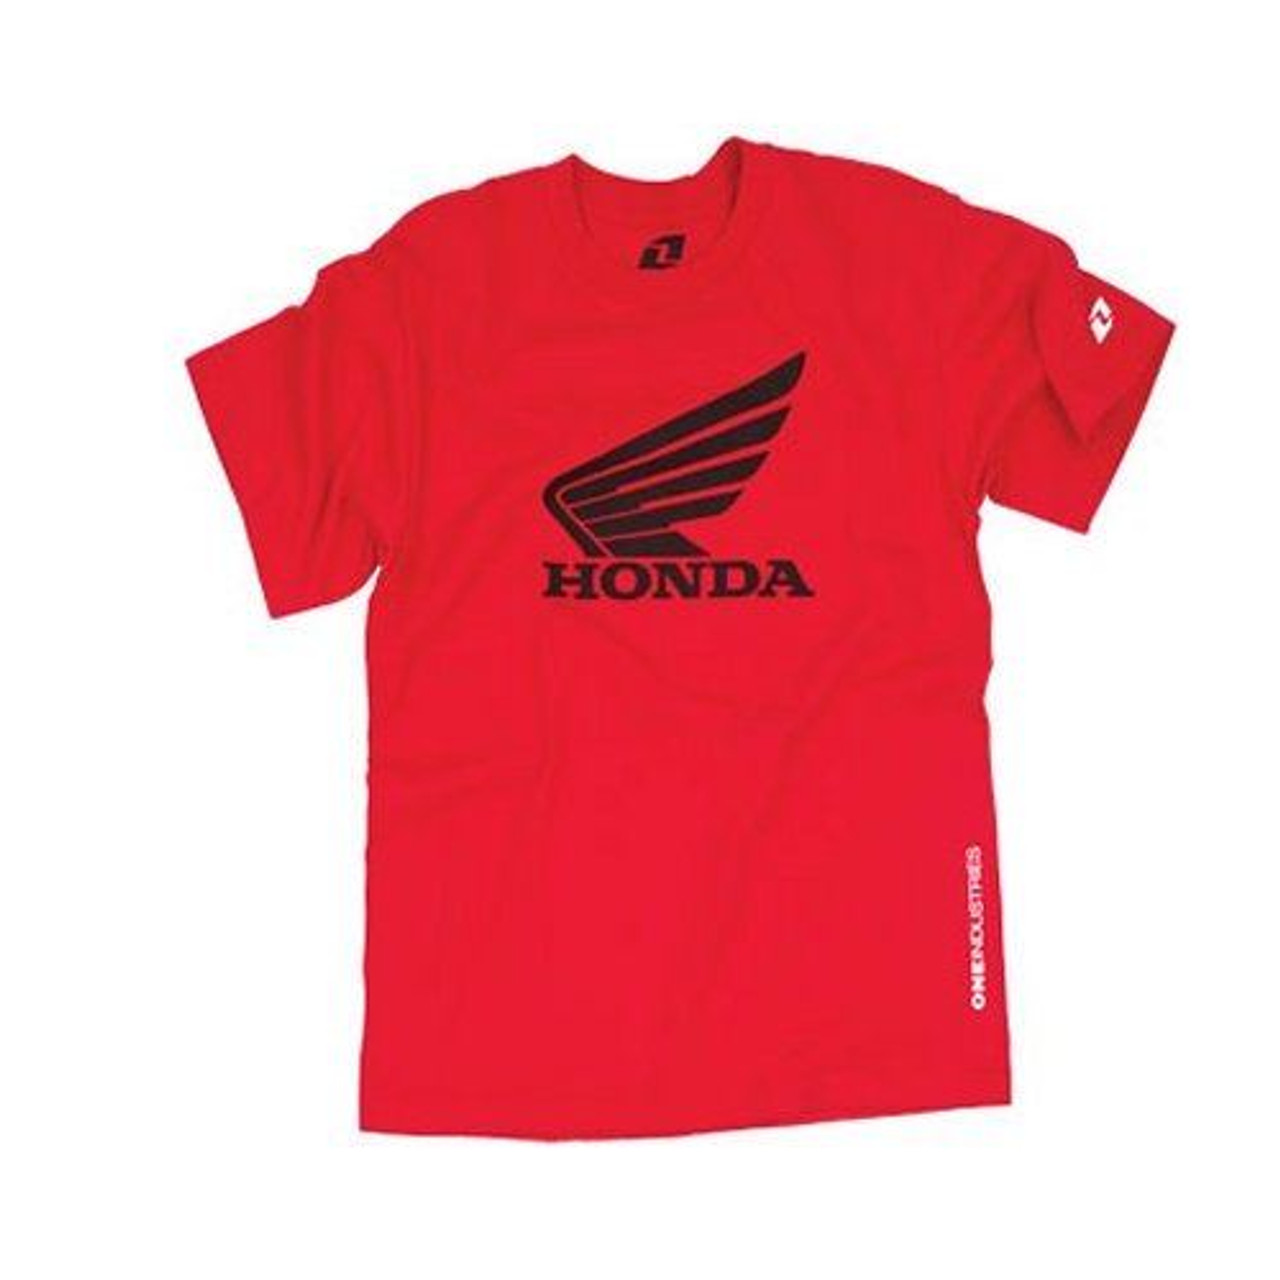 ONE INDUSTRIES YOUTH SIZE HONDA T SHIRT RED